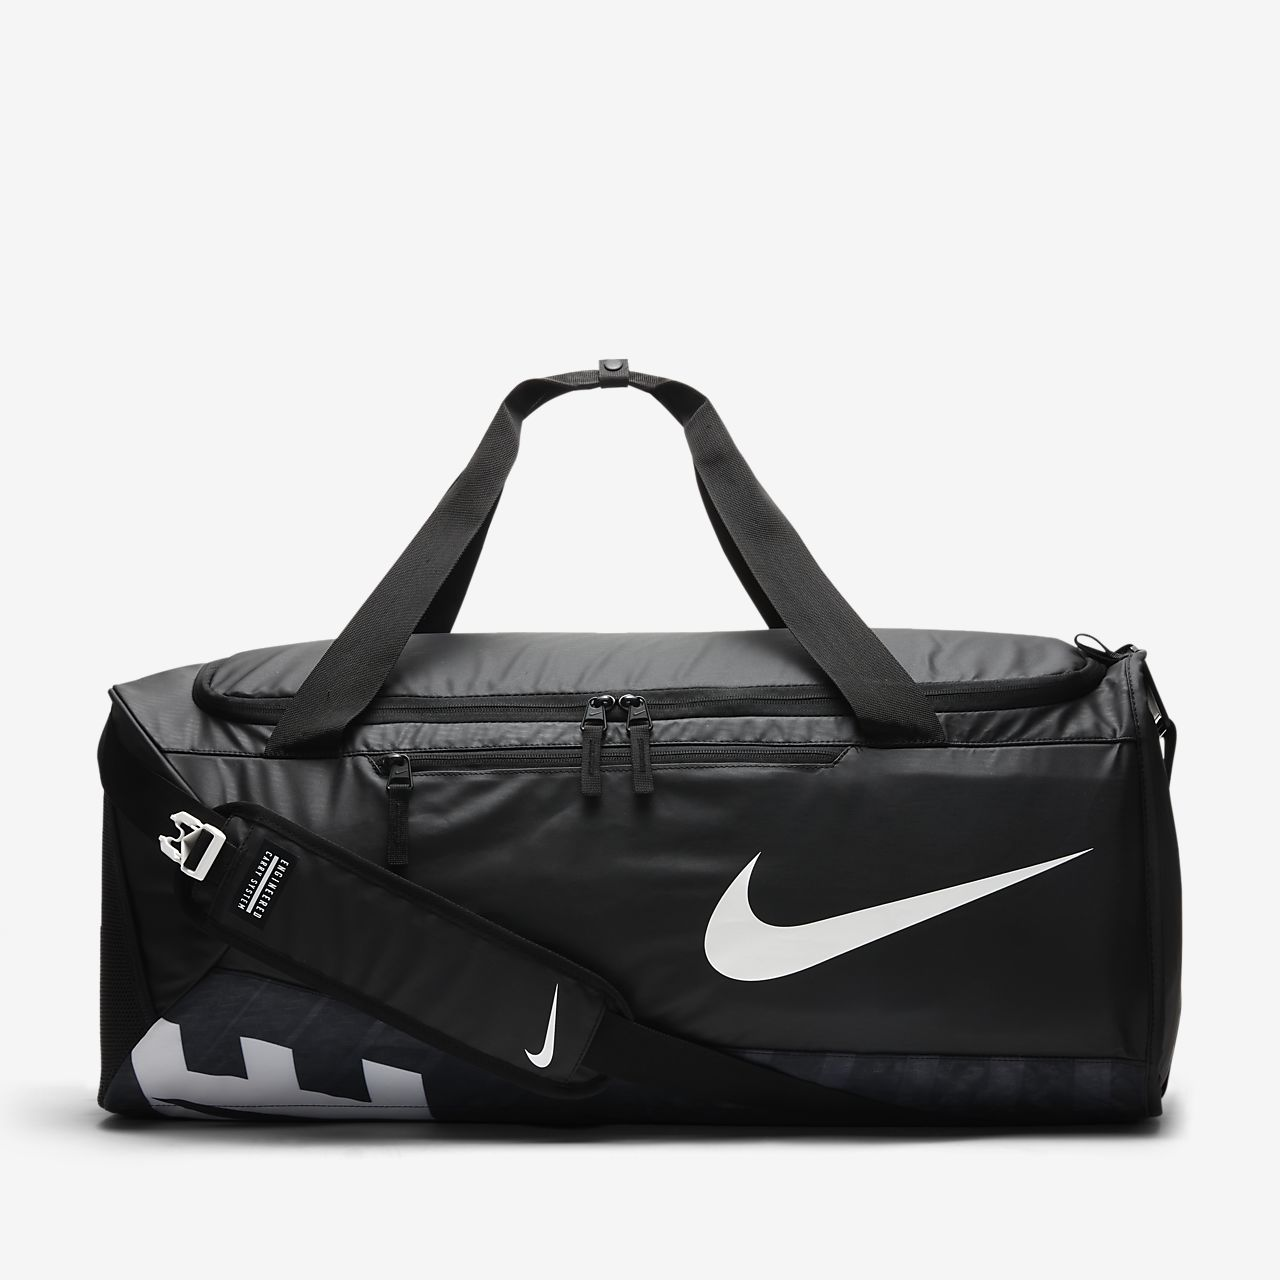 De Cross Nike Body Deportegrande Bolsa Alpha Adapt T53lFKJu1c